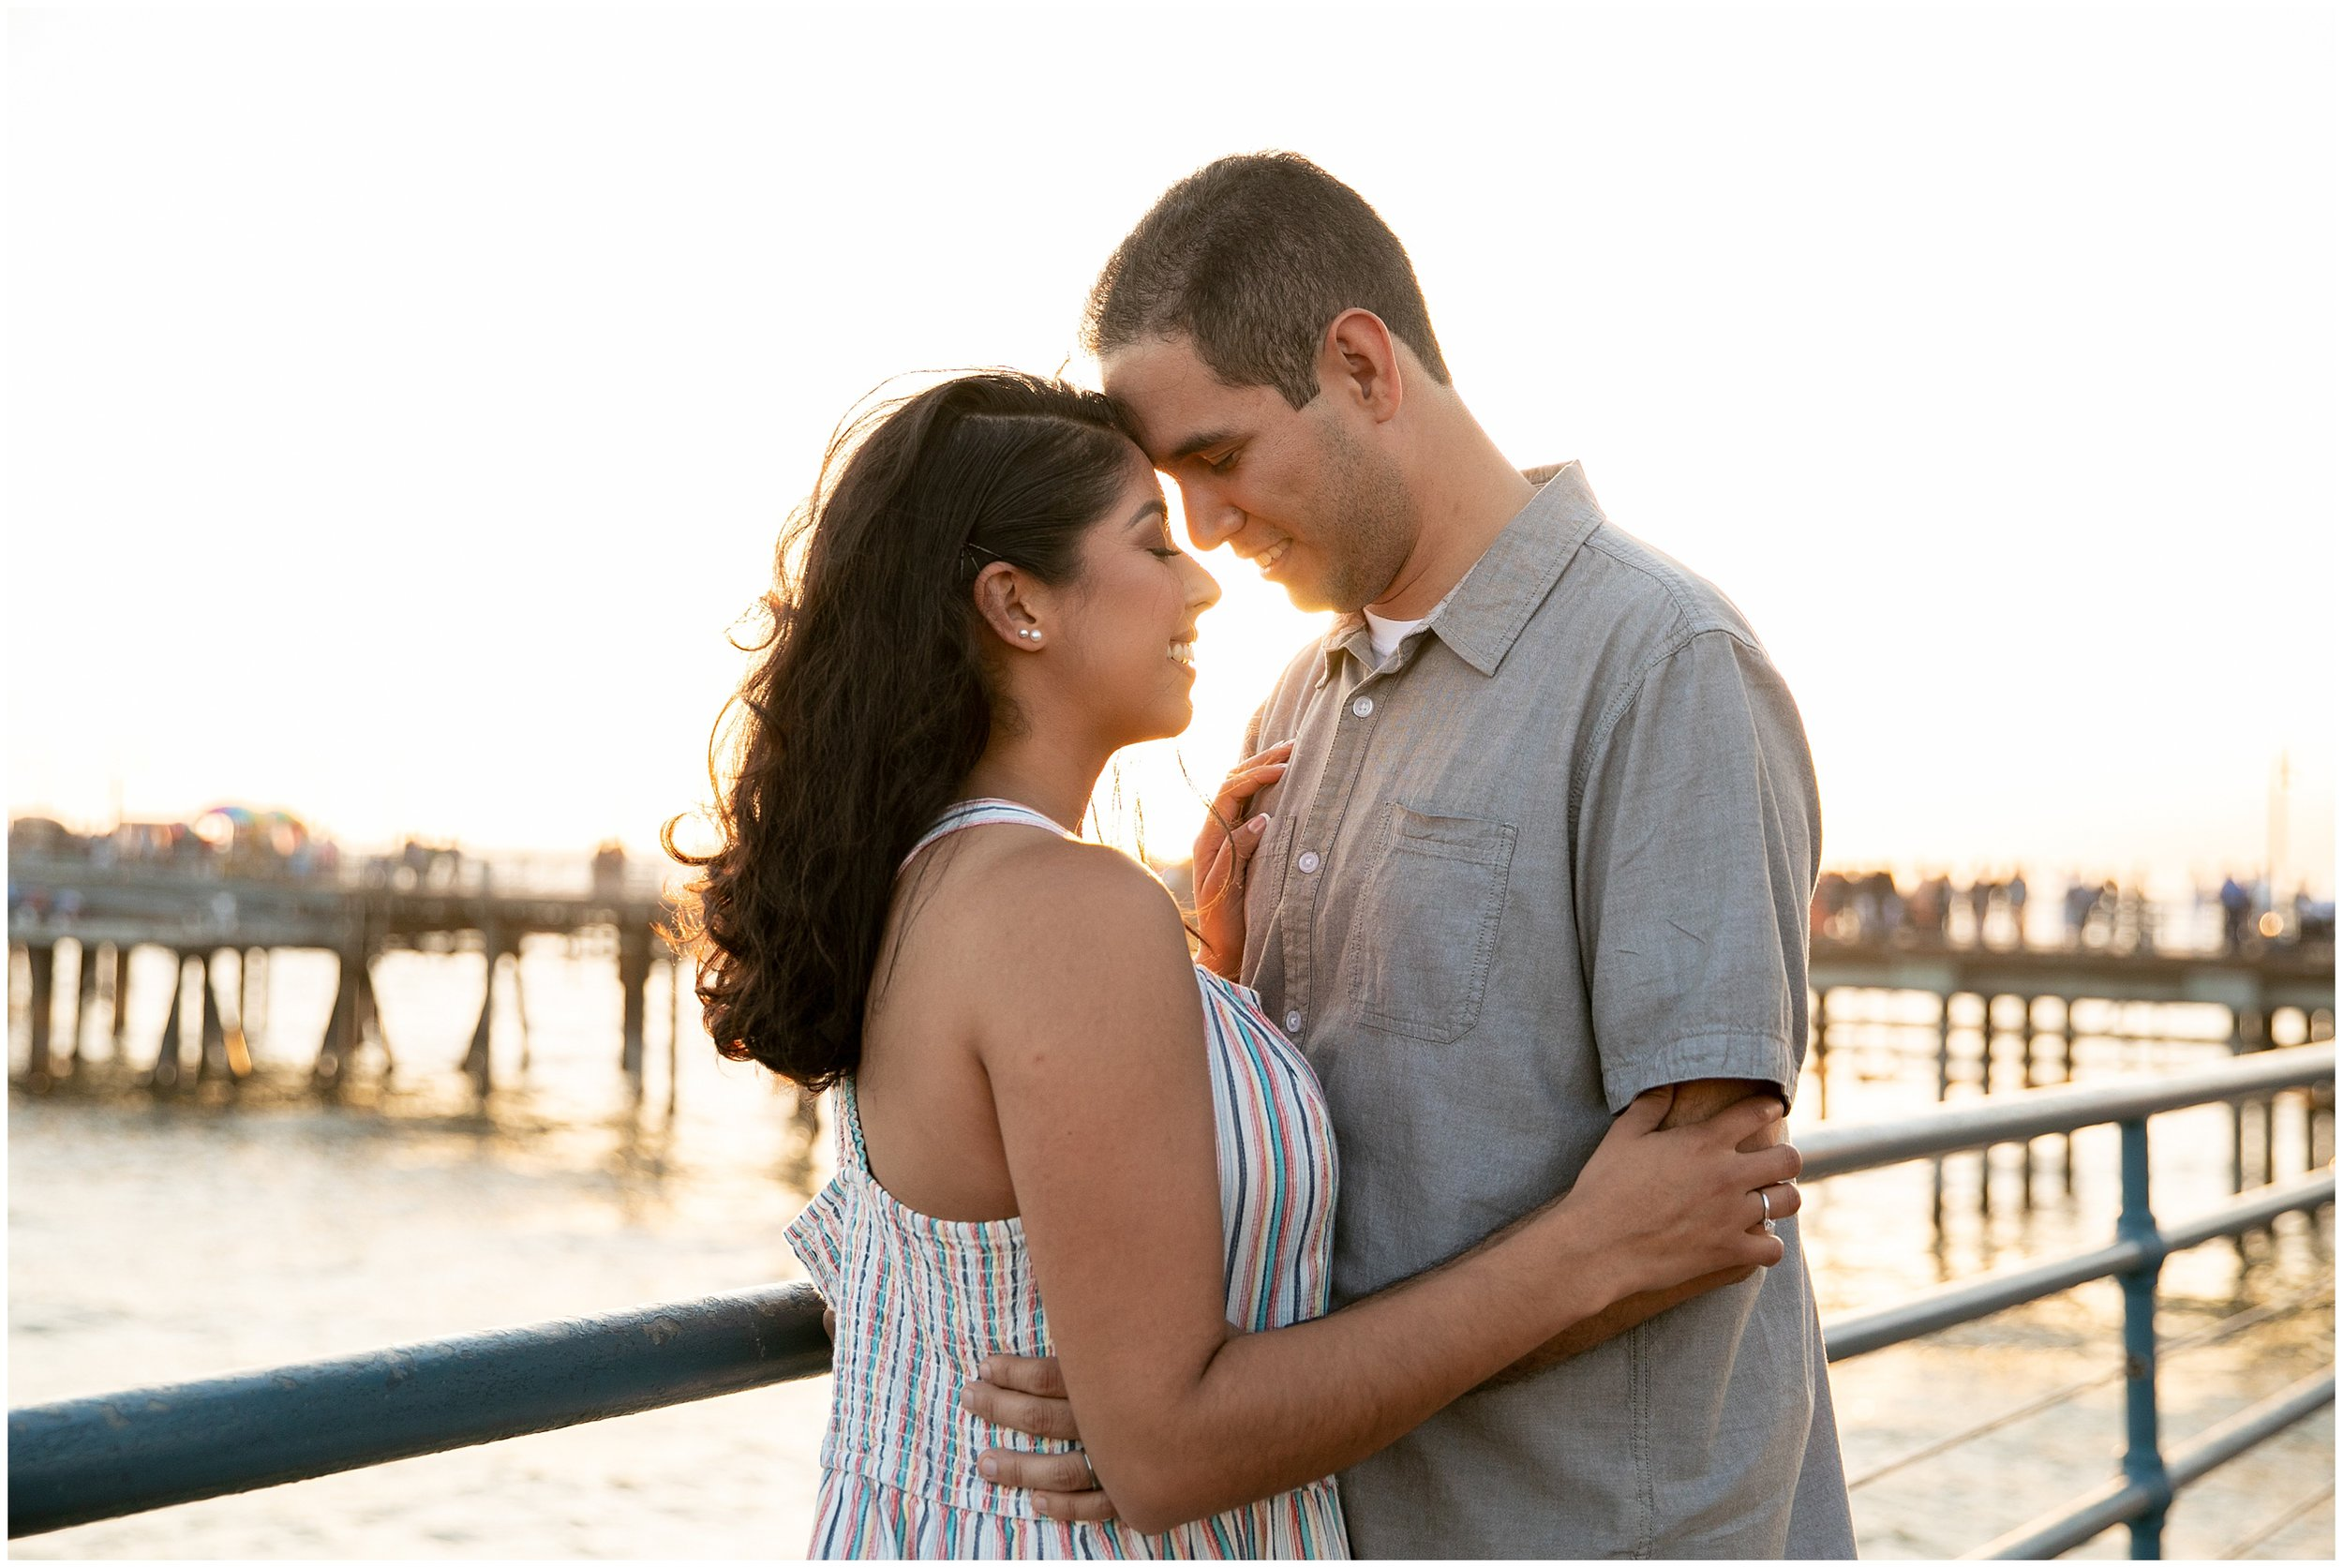 santa monica engagement-kellaphotography-laweddingphotographer_0045.jpg